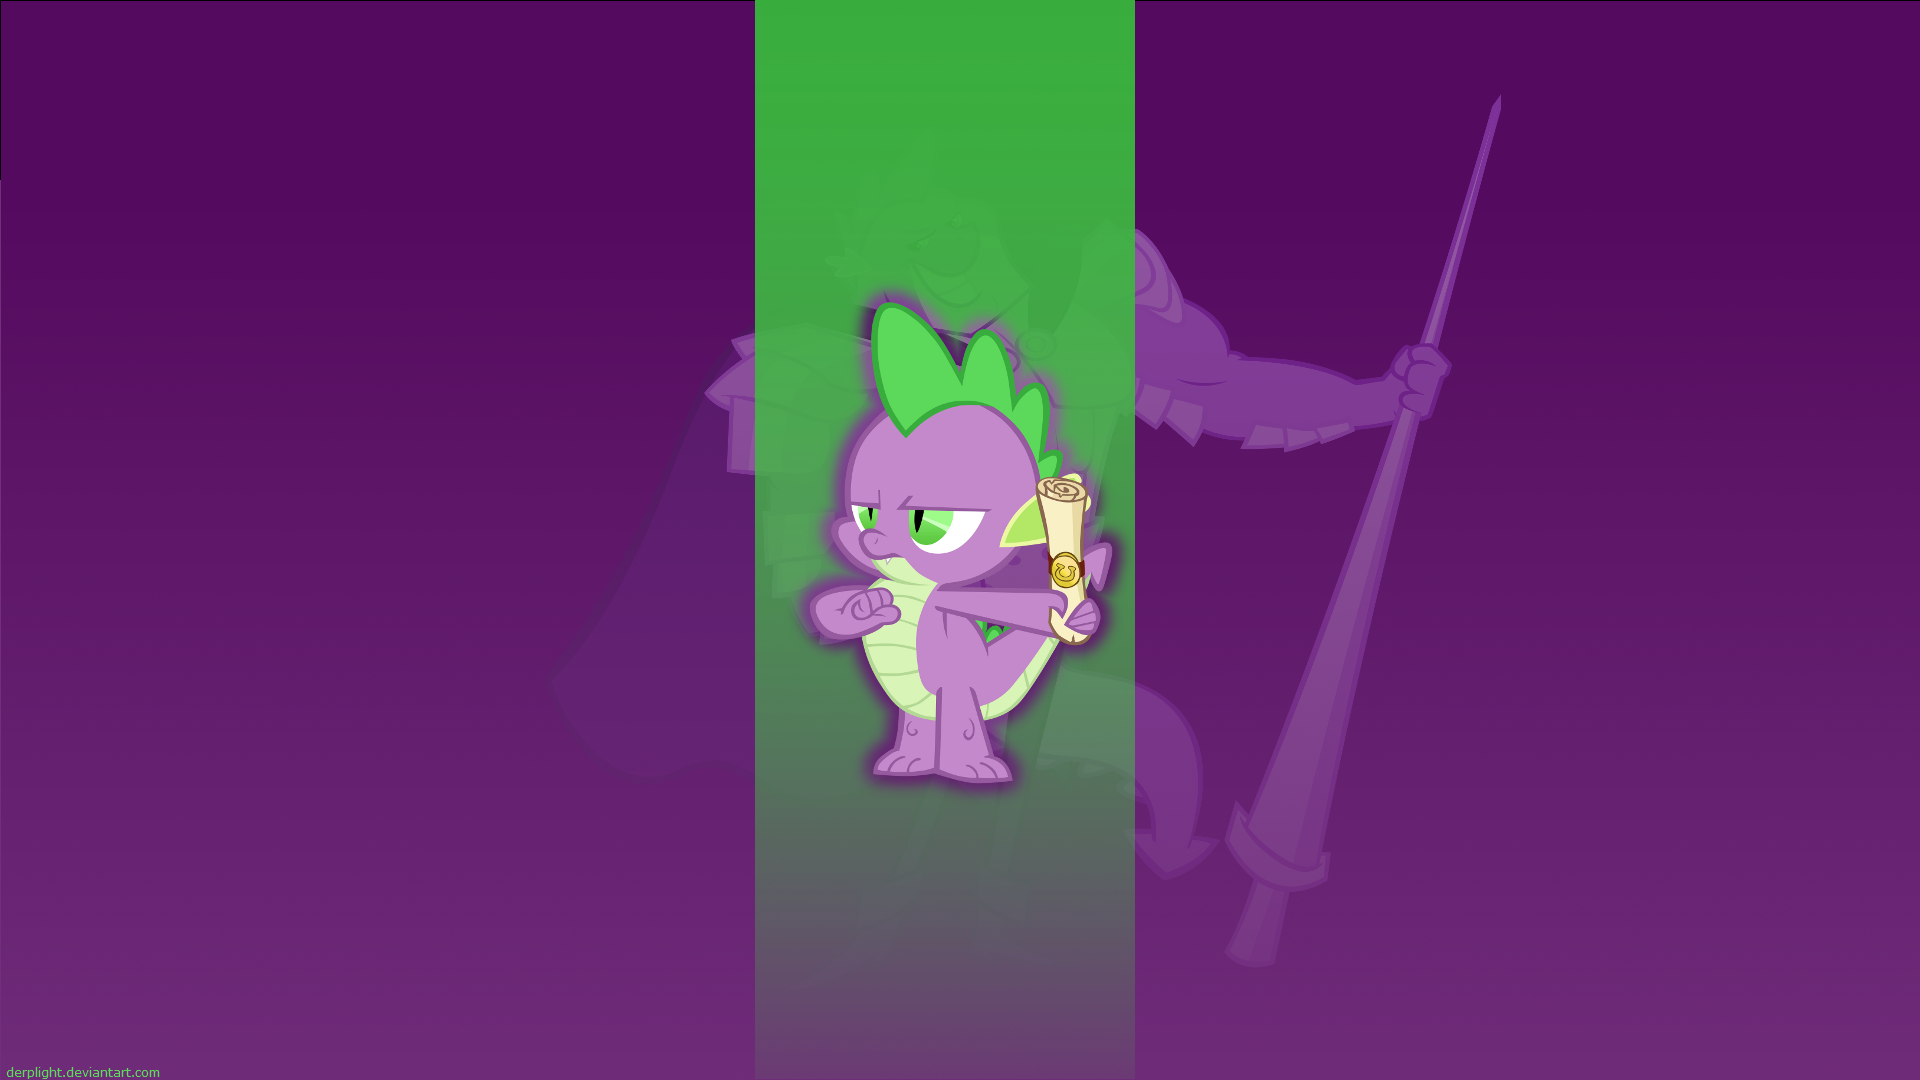 Spike Wallpaper by DerpLight, M99moron and Qsteel